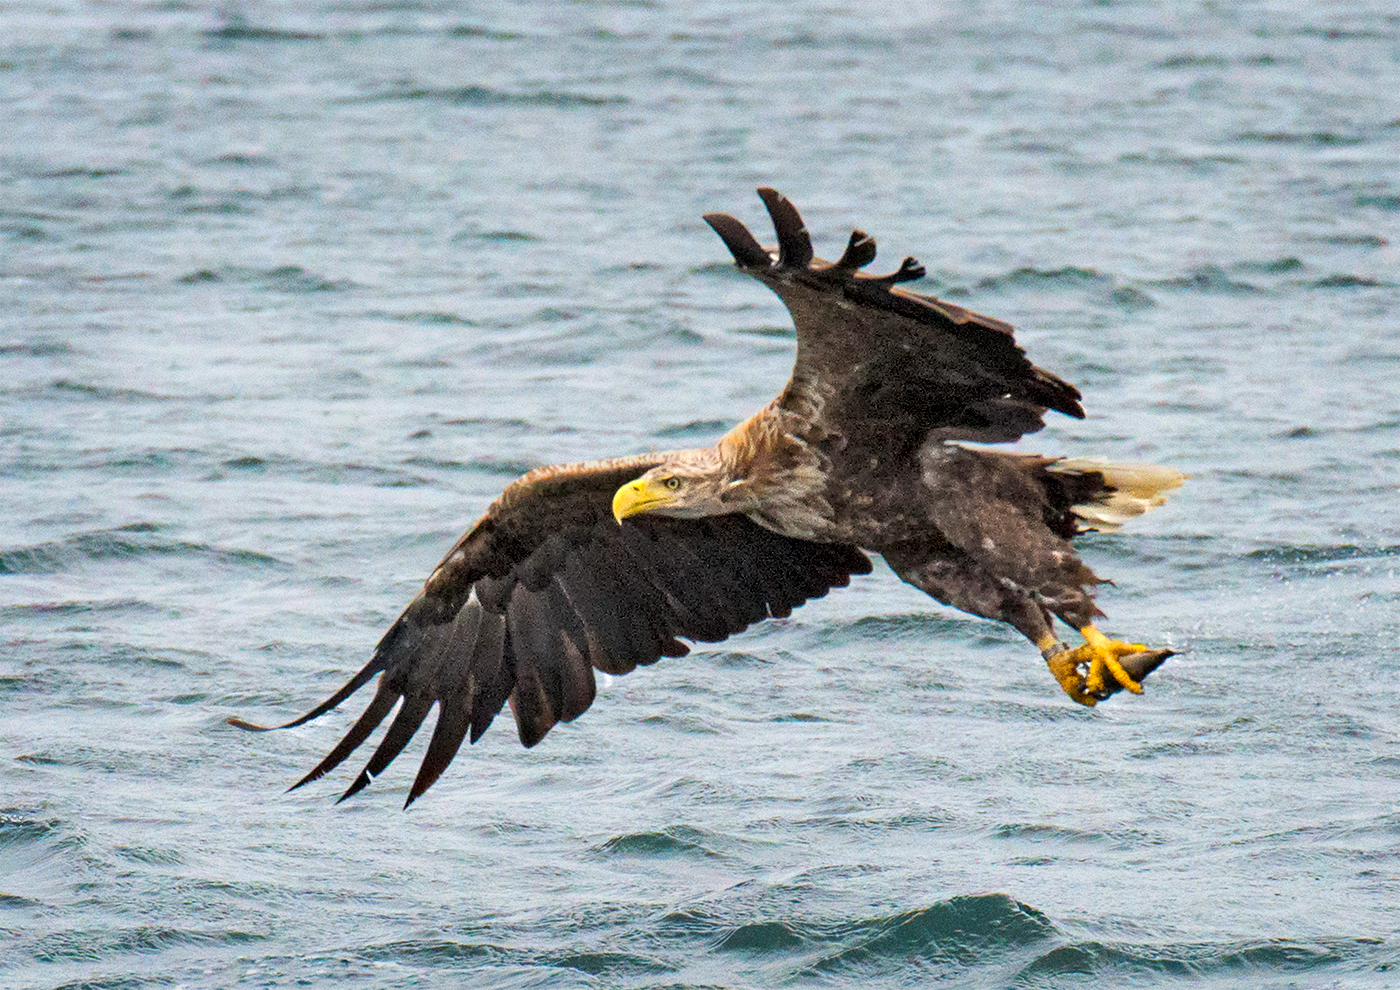 sea-eagle-fliying-with-fish